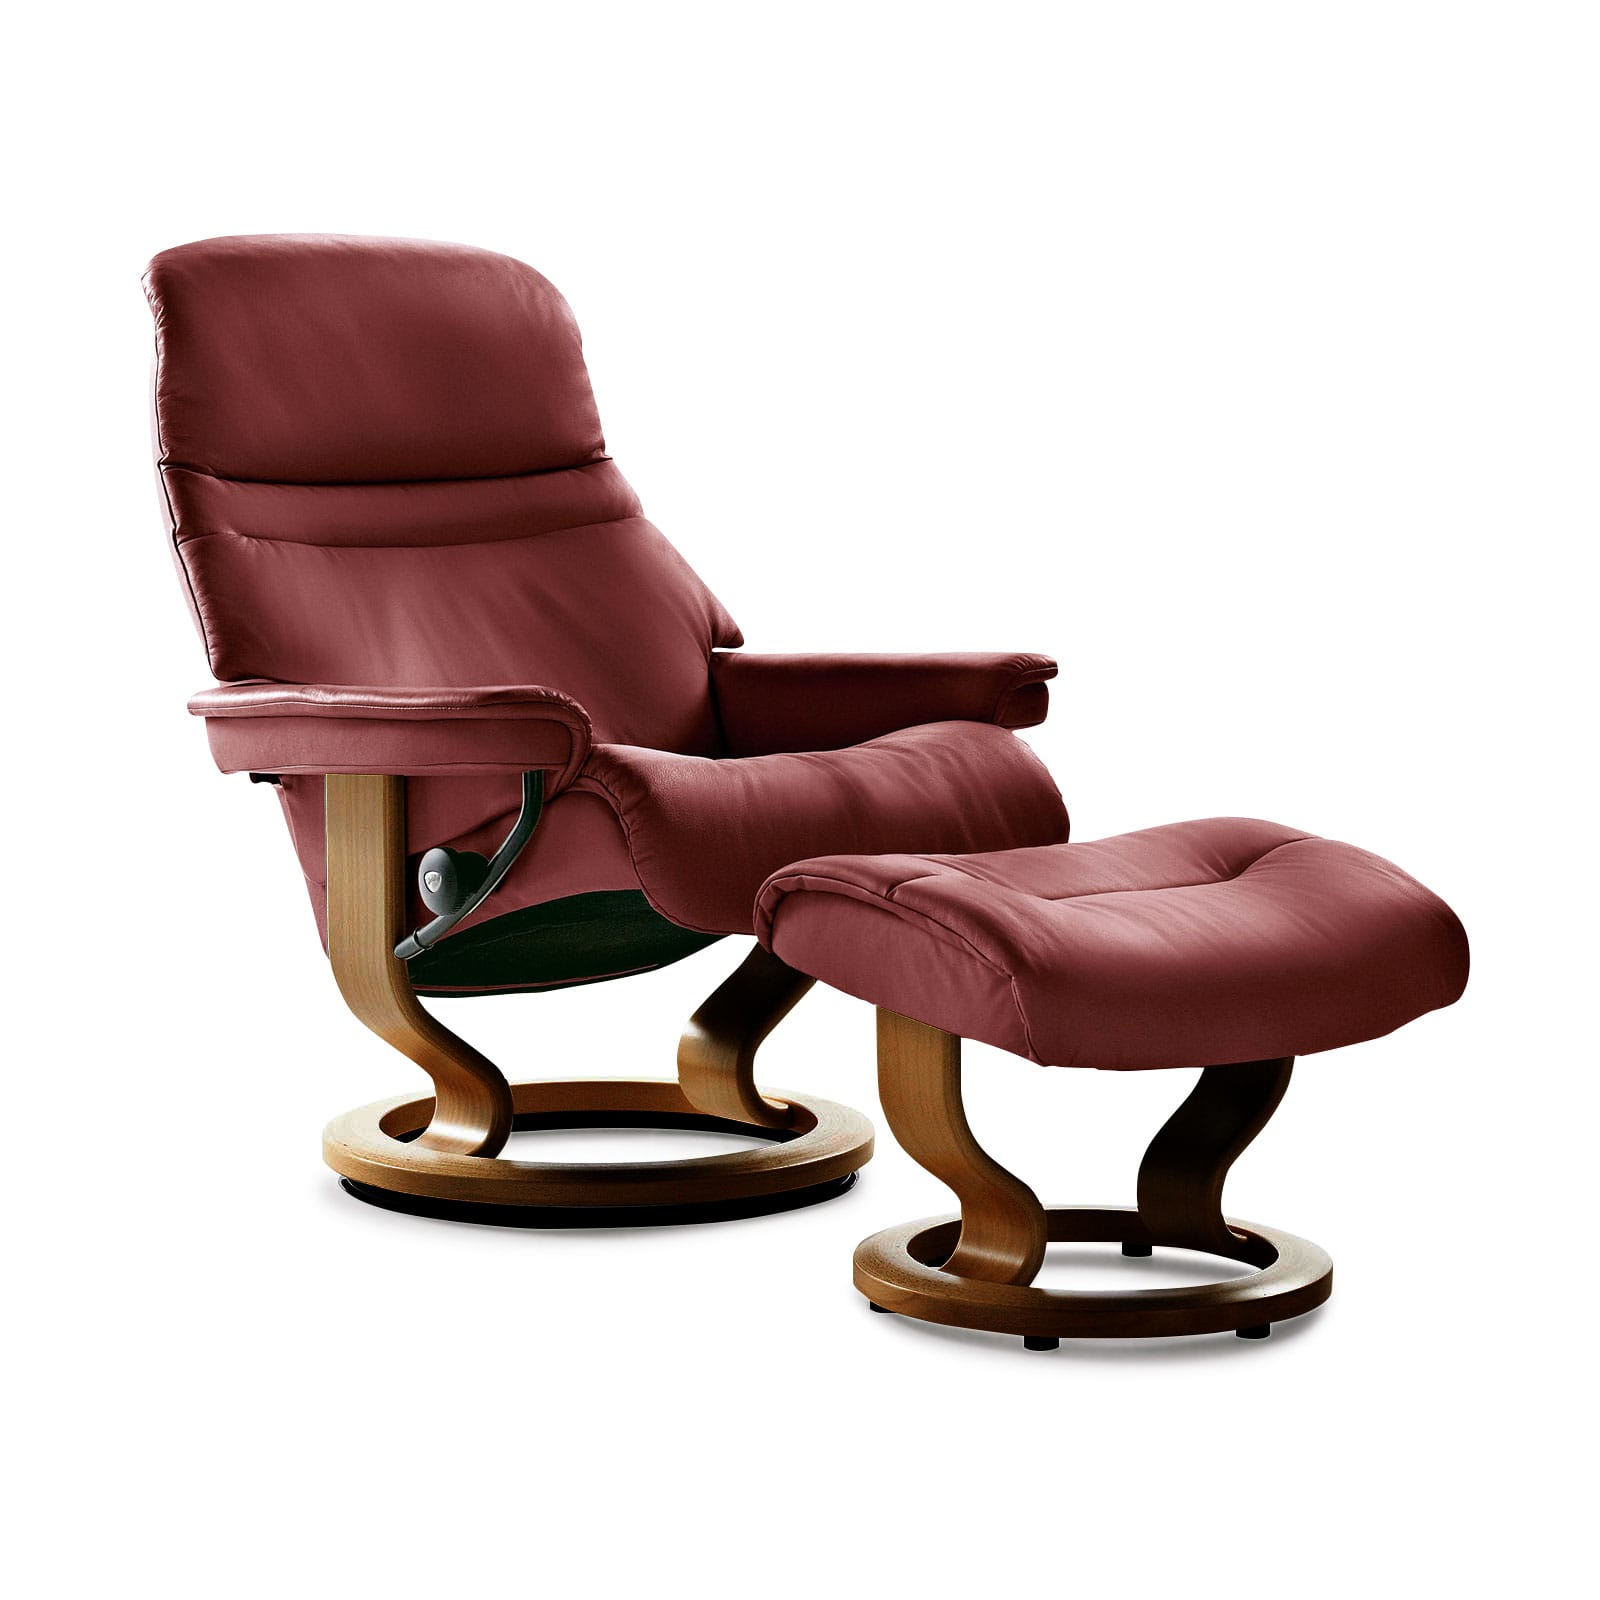 stressless sessel sunrise classic batick burgundy mit hocker. Black Bedroom Furniture Sets. Home Design Ideas